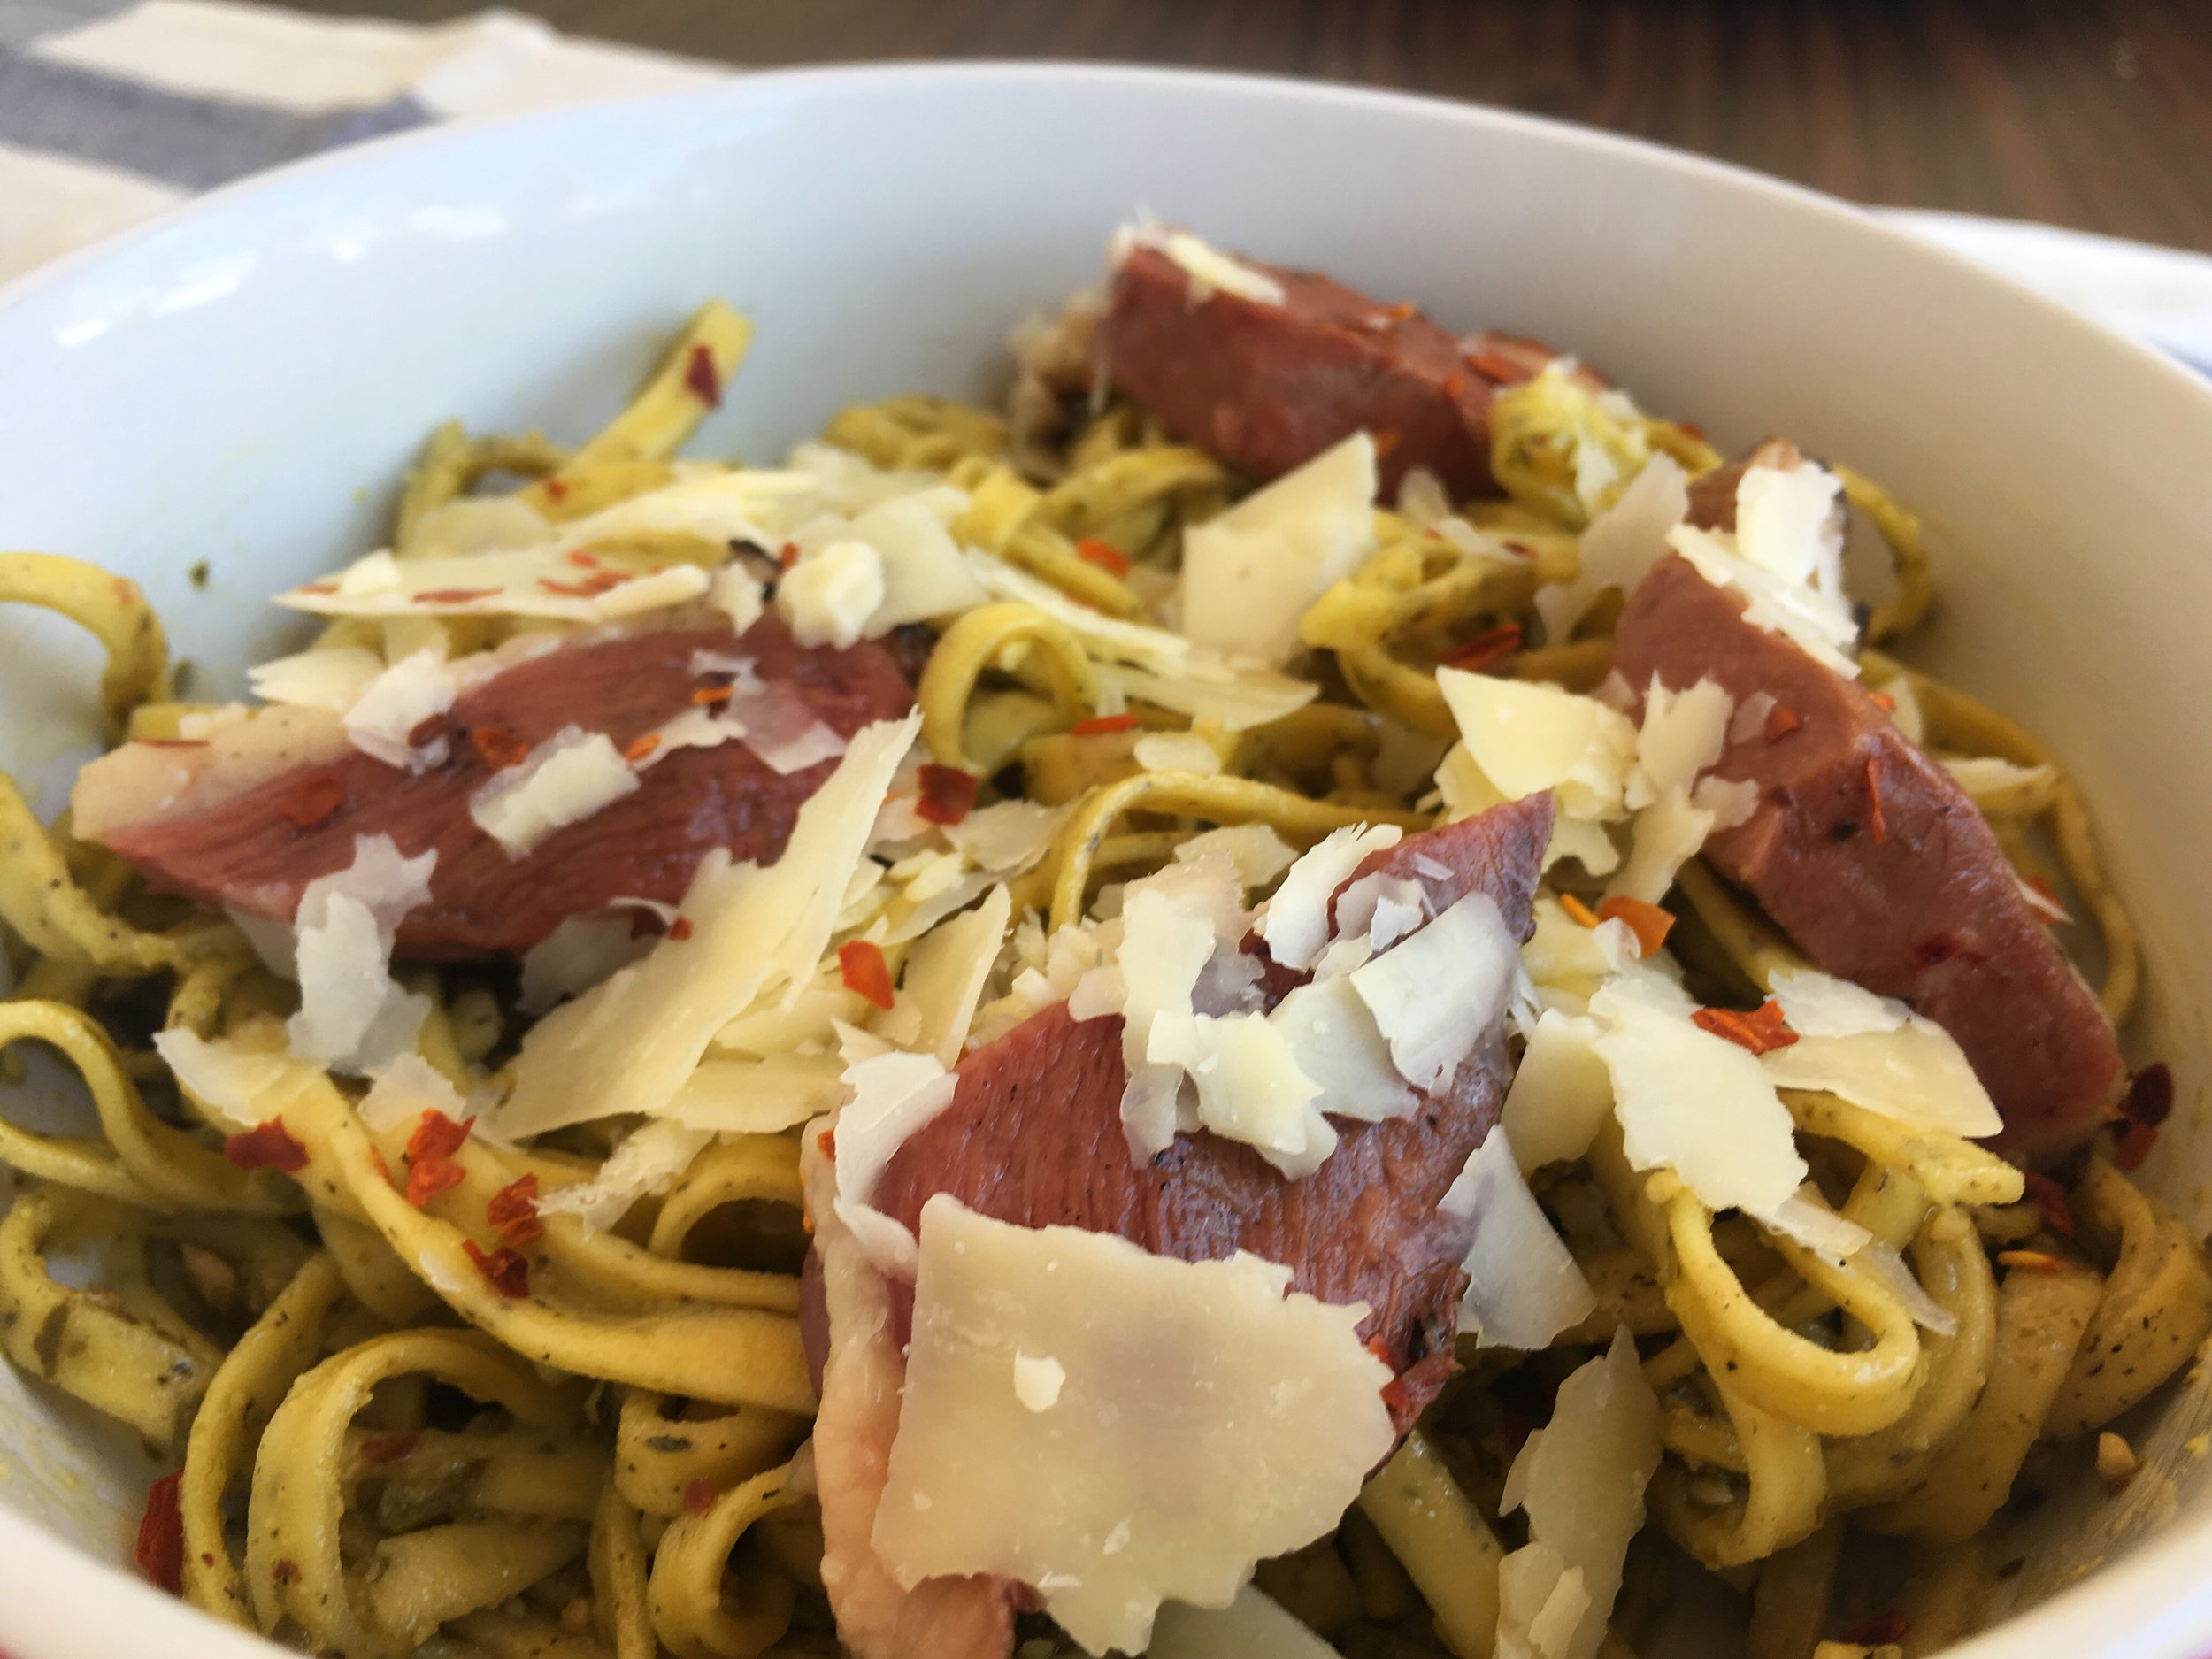 fettuccine with grilled moulard duck breast, pesto, and freshly grated parmesan